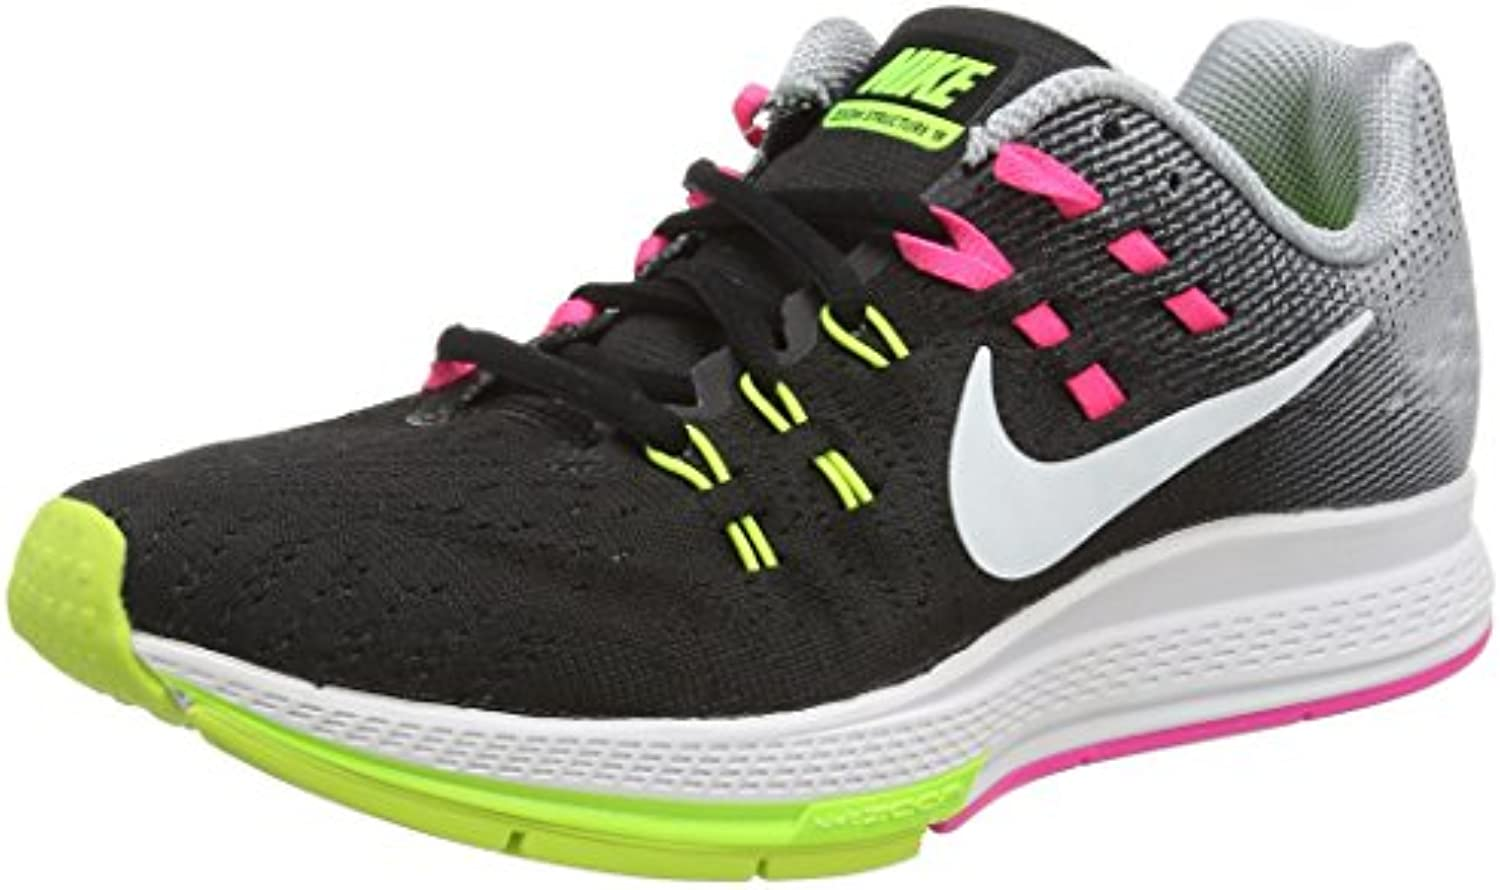 NIKE Air Zoom Structure 19, Chaussures Running de Running Chaussures Compétition Femme 9ee0fa